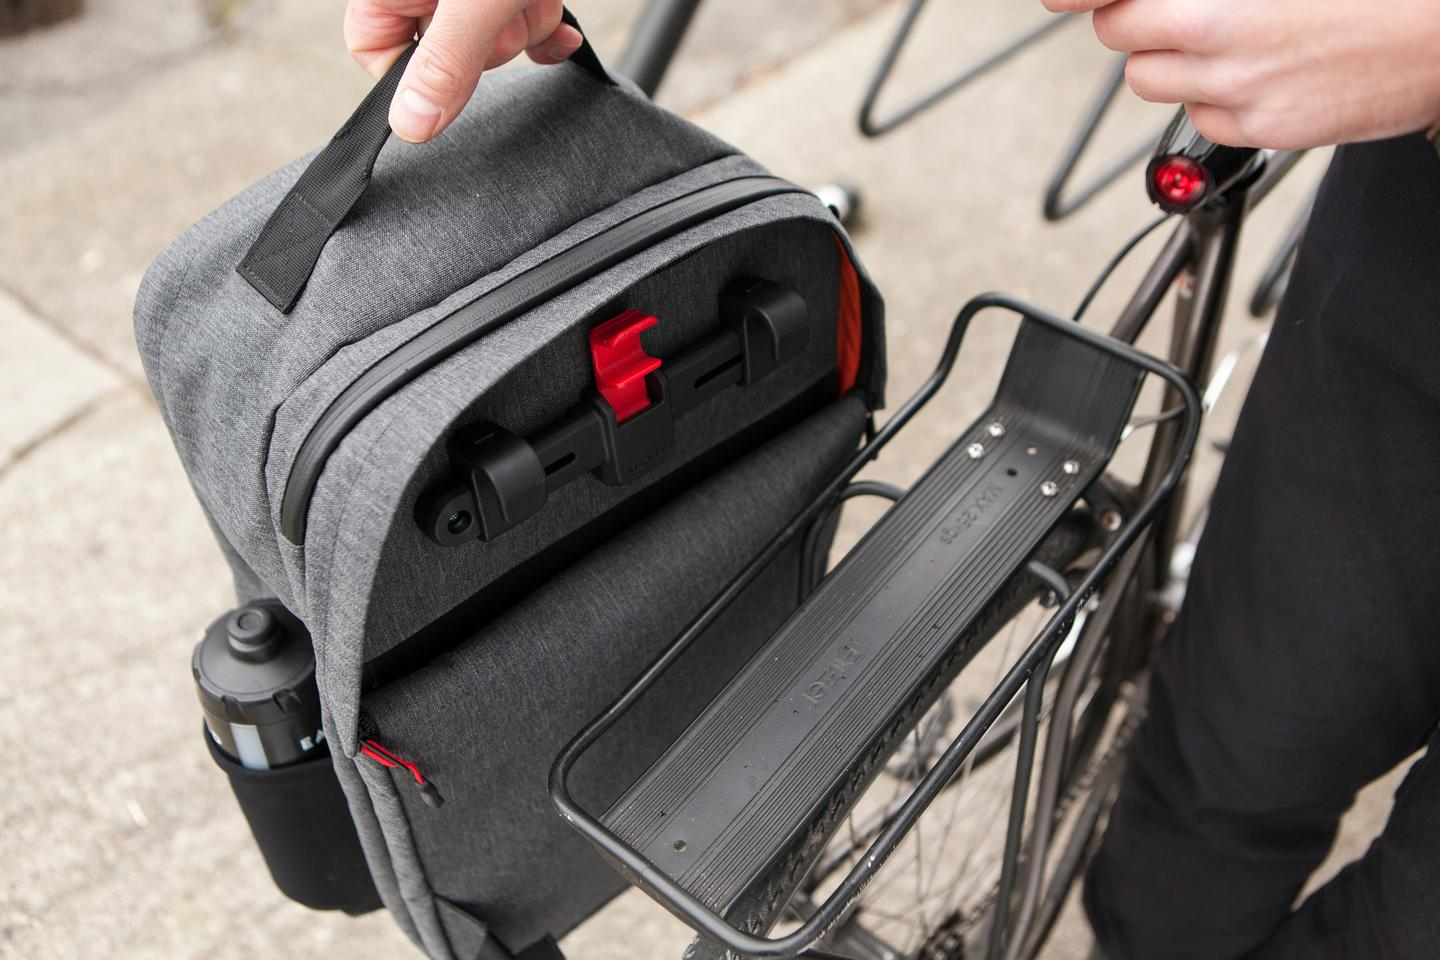 The pannier version of the Backpack